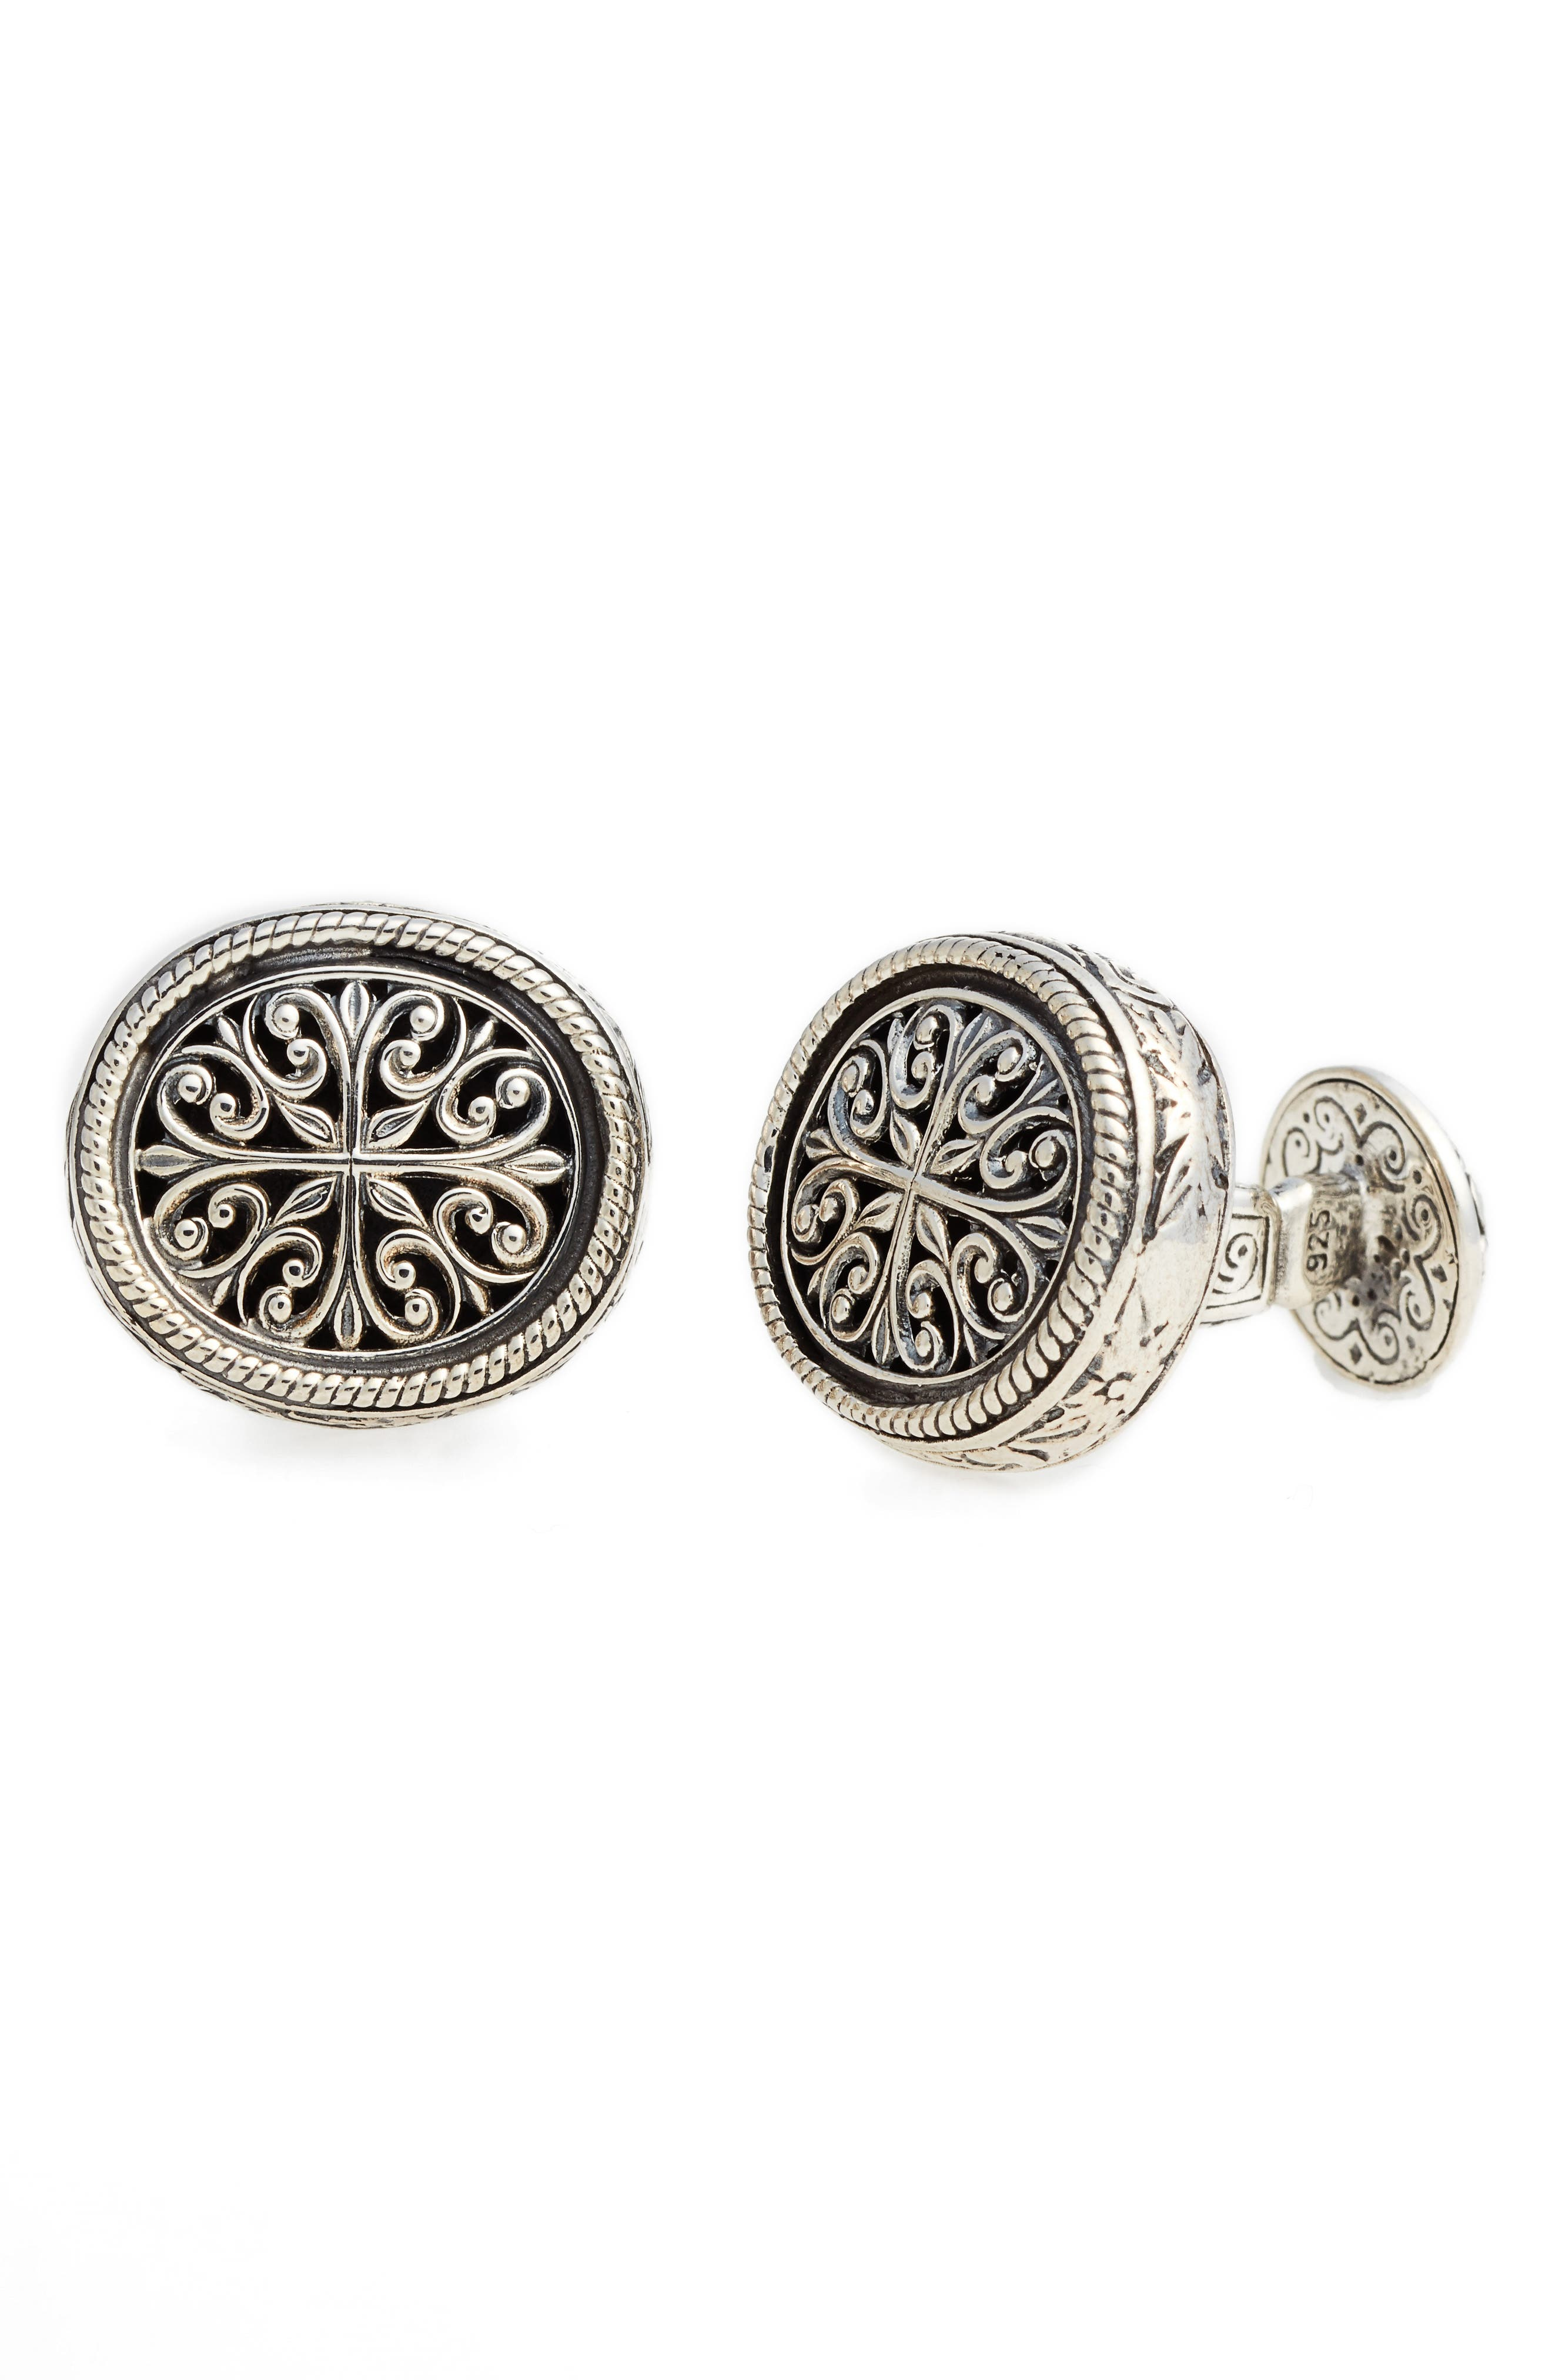 Filigree Oval Cufflinks,                         Main,                         color, SILVER